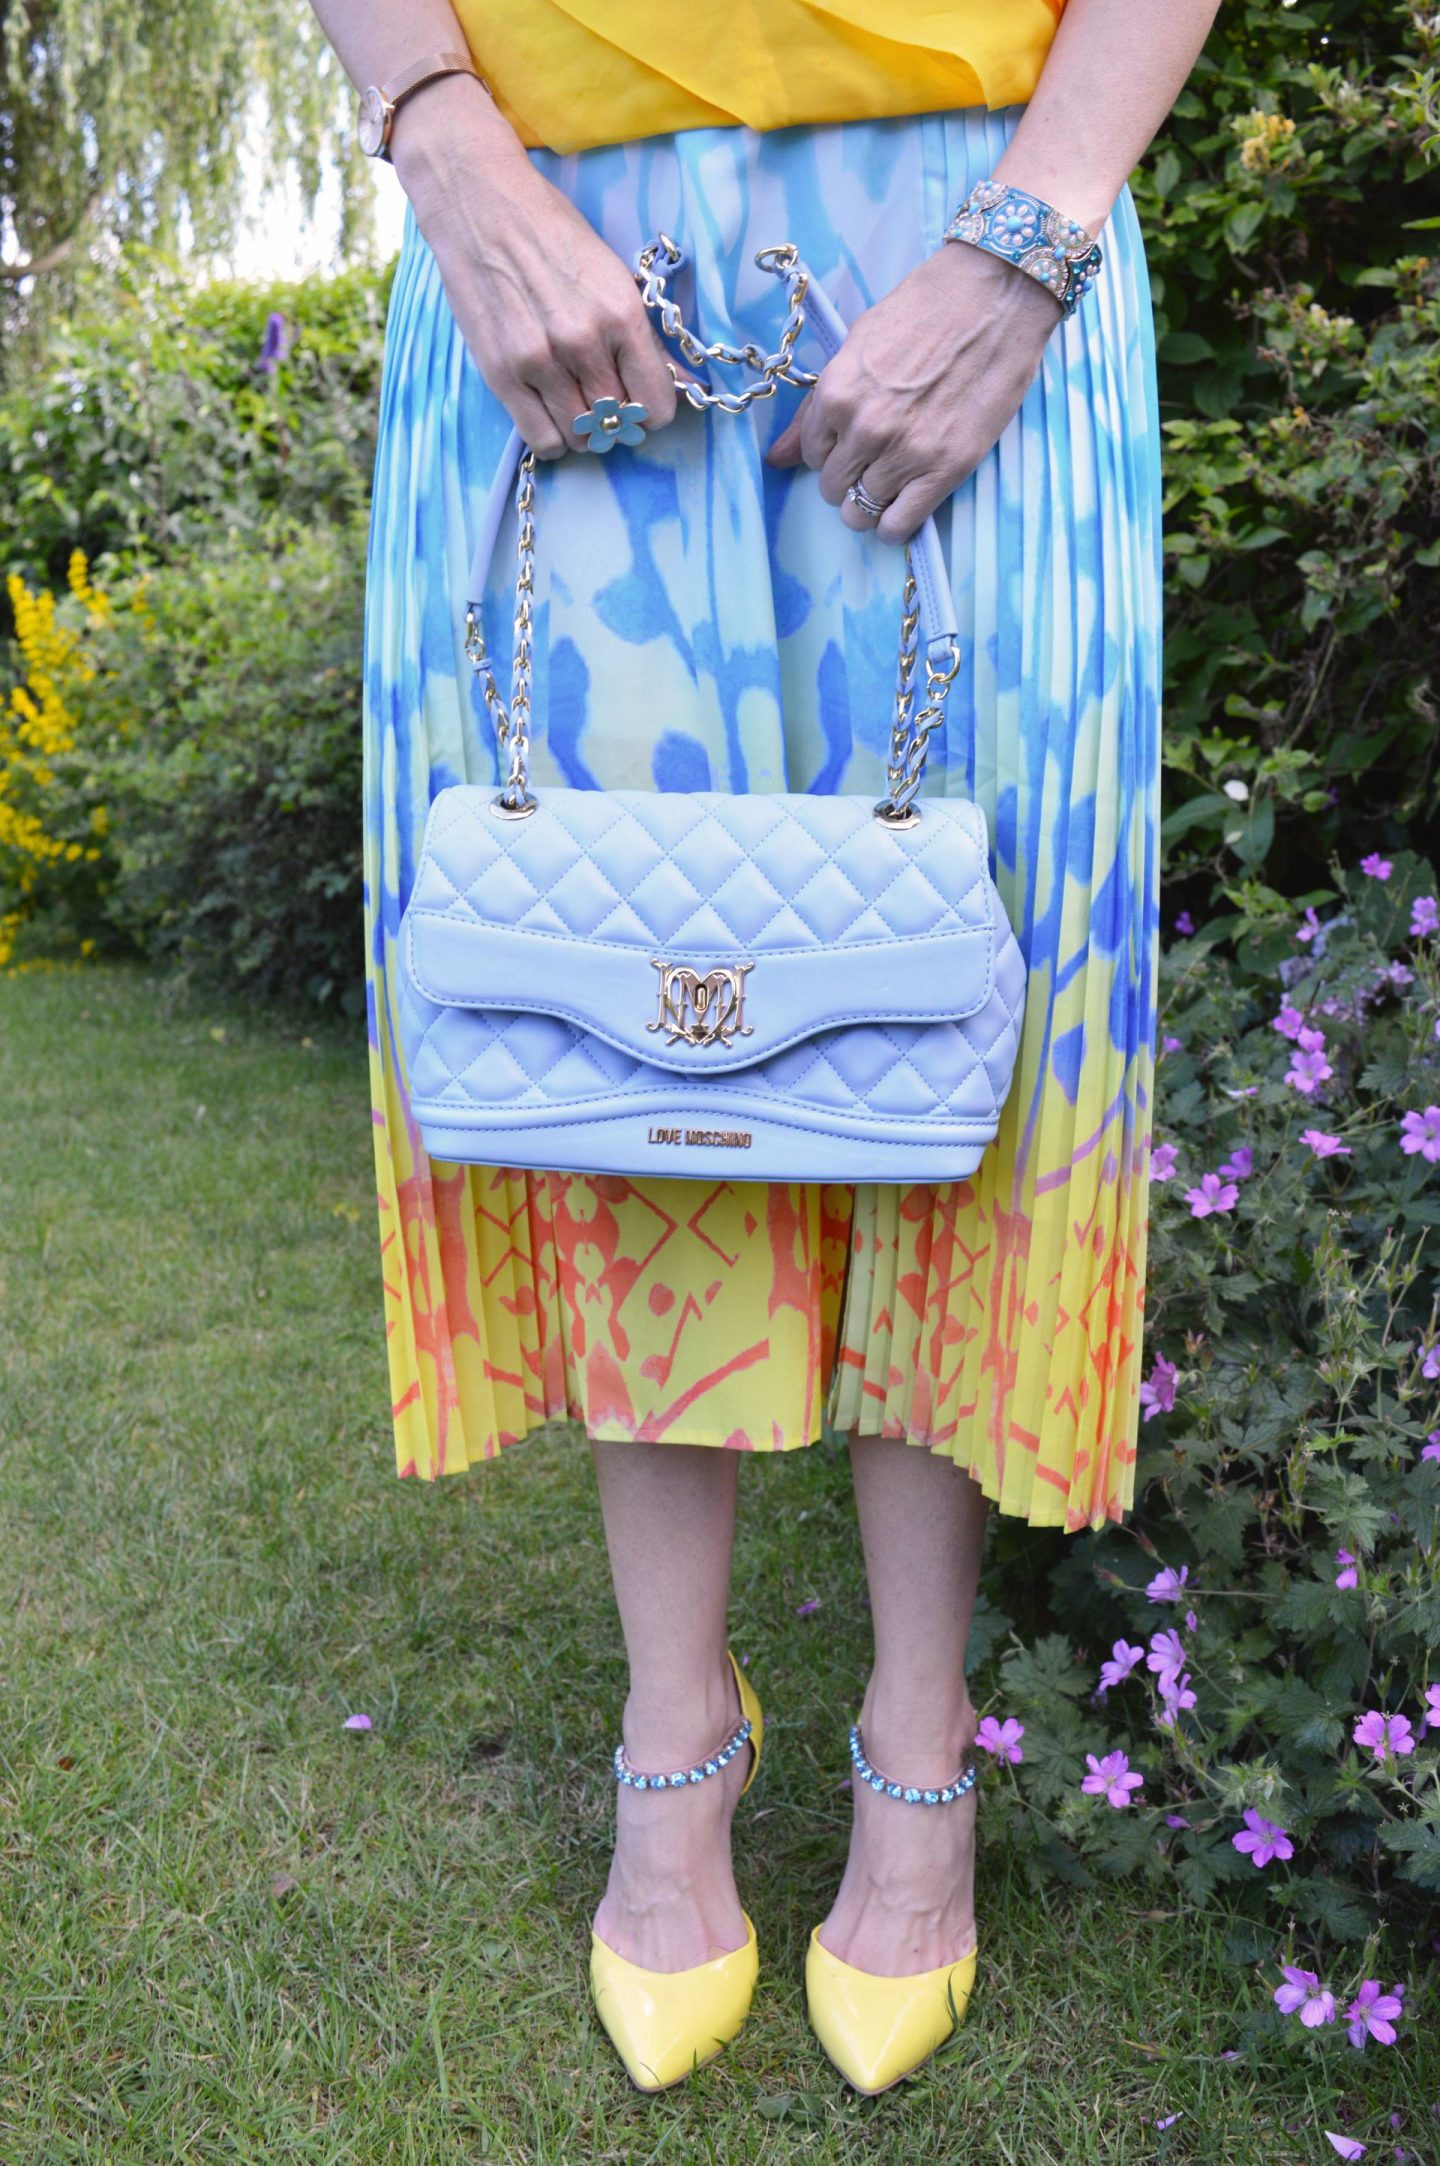 Reiss pleated skirt pale blue Love Moschino bag, Carvela yellow ankle strap shoes